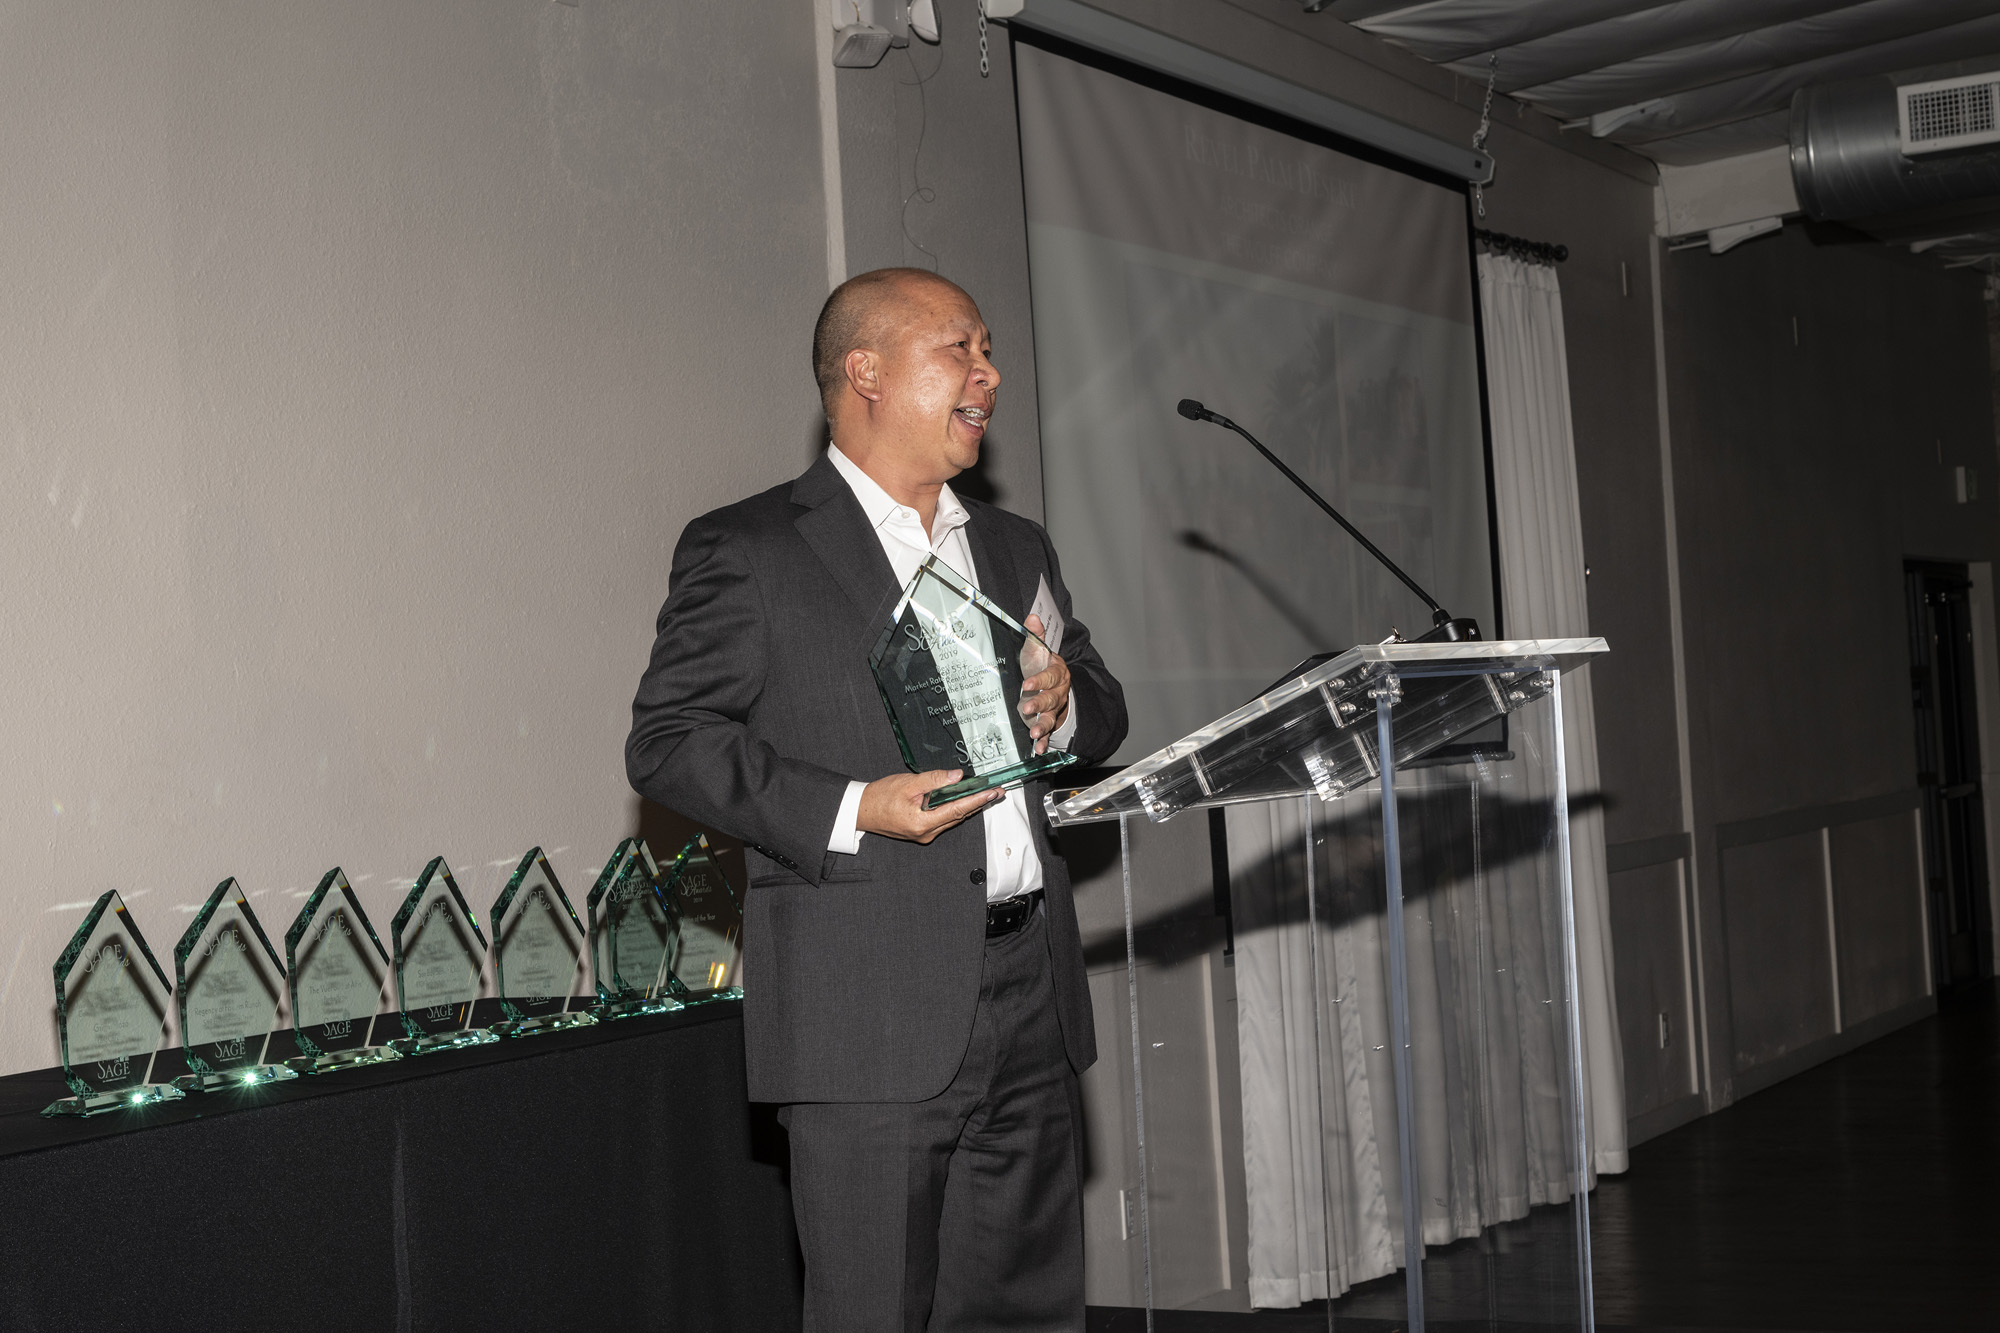 Council on Sage 2019 Awards